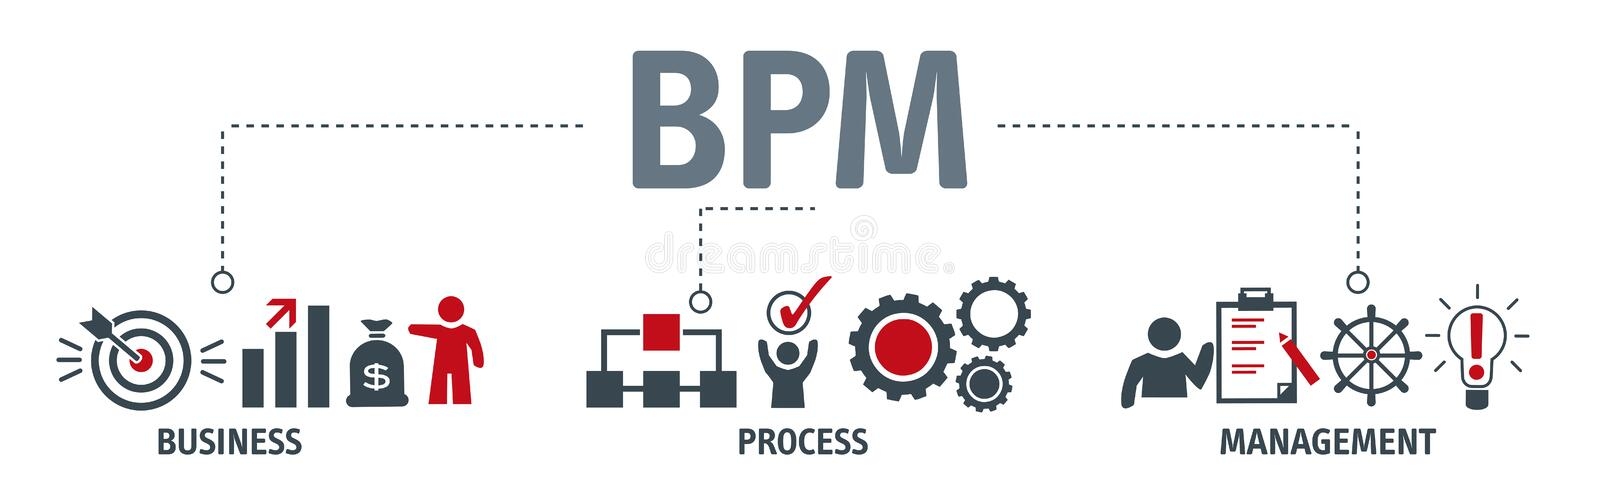 Banner Business Process Management concept royalty free illustration